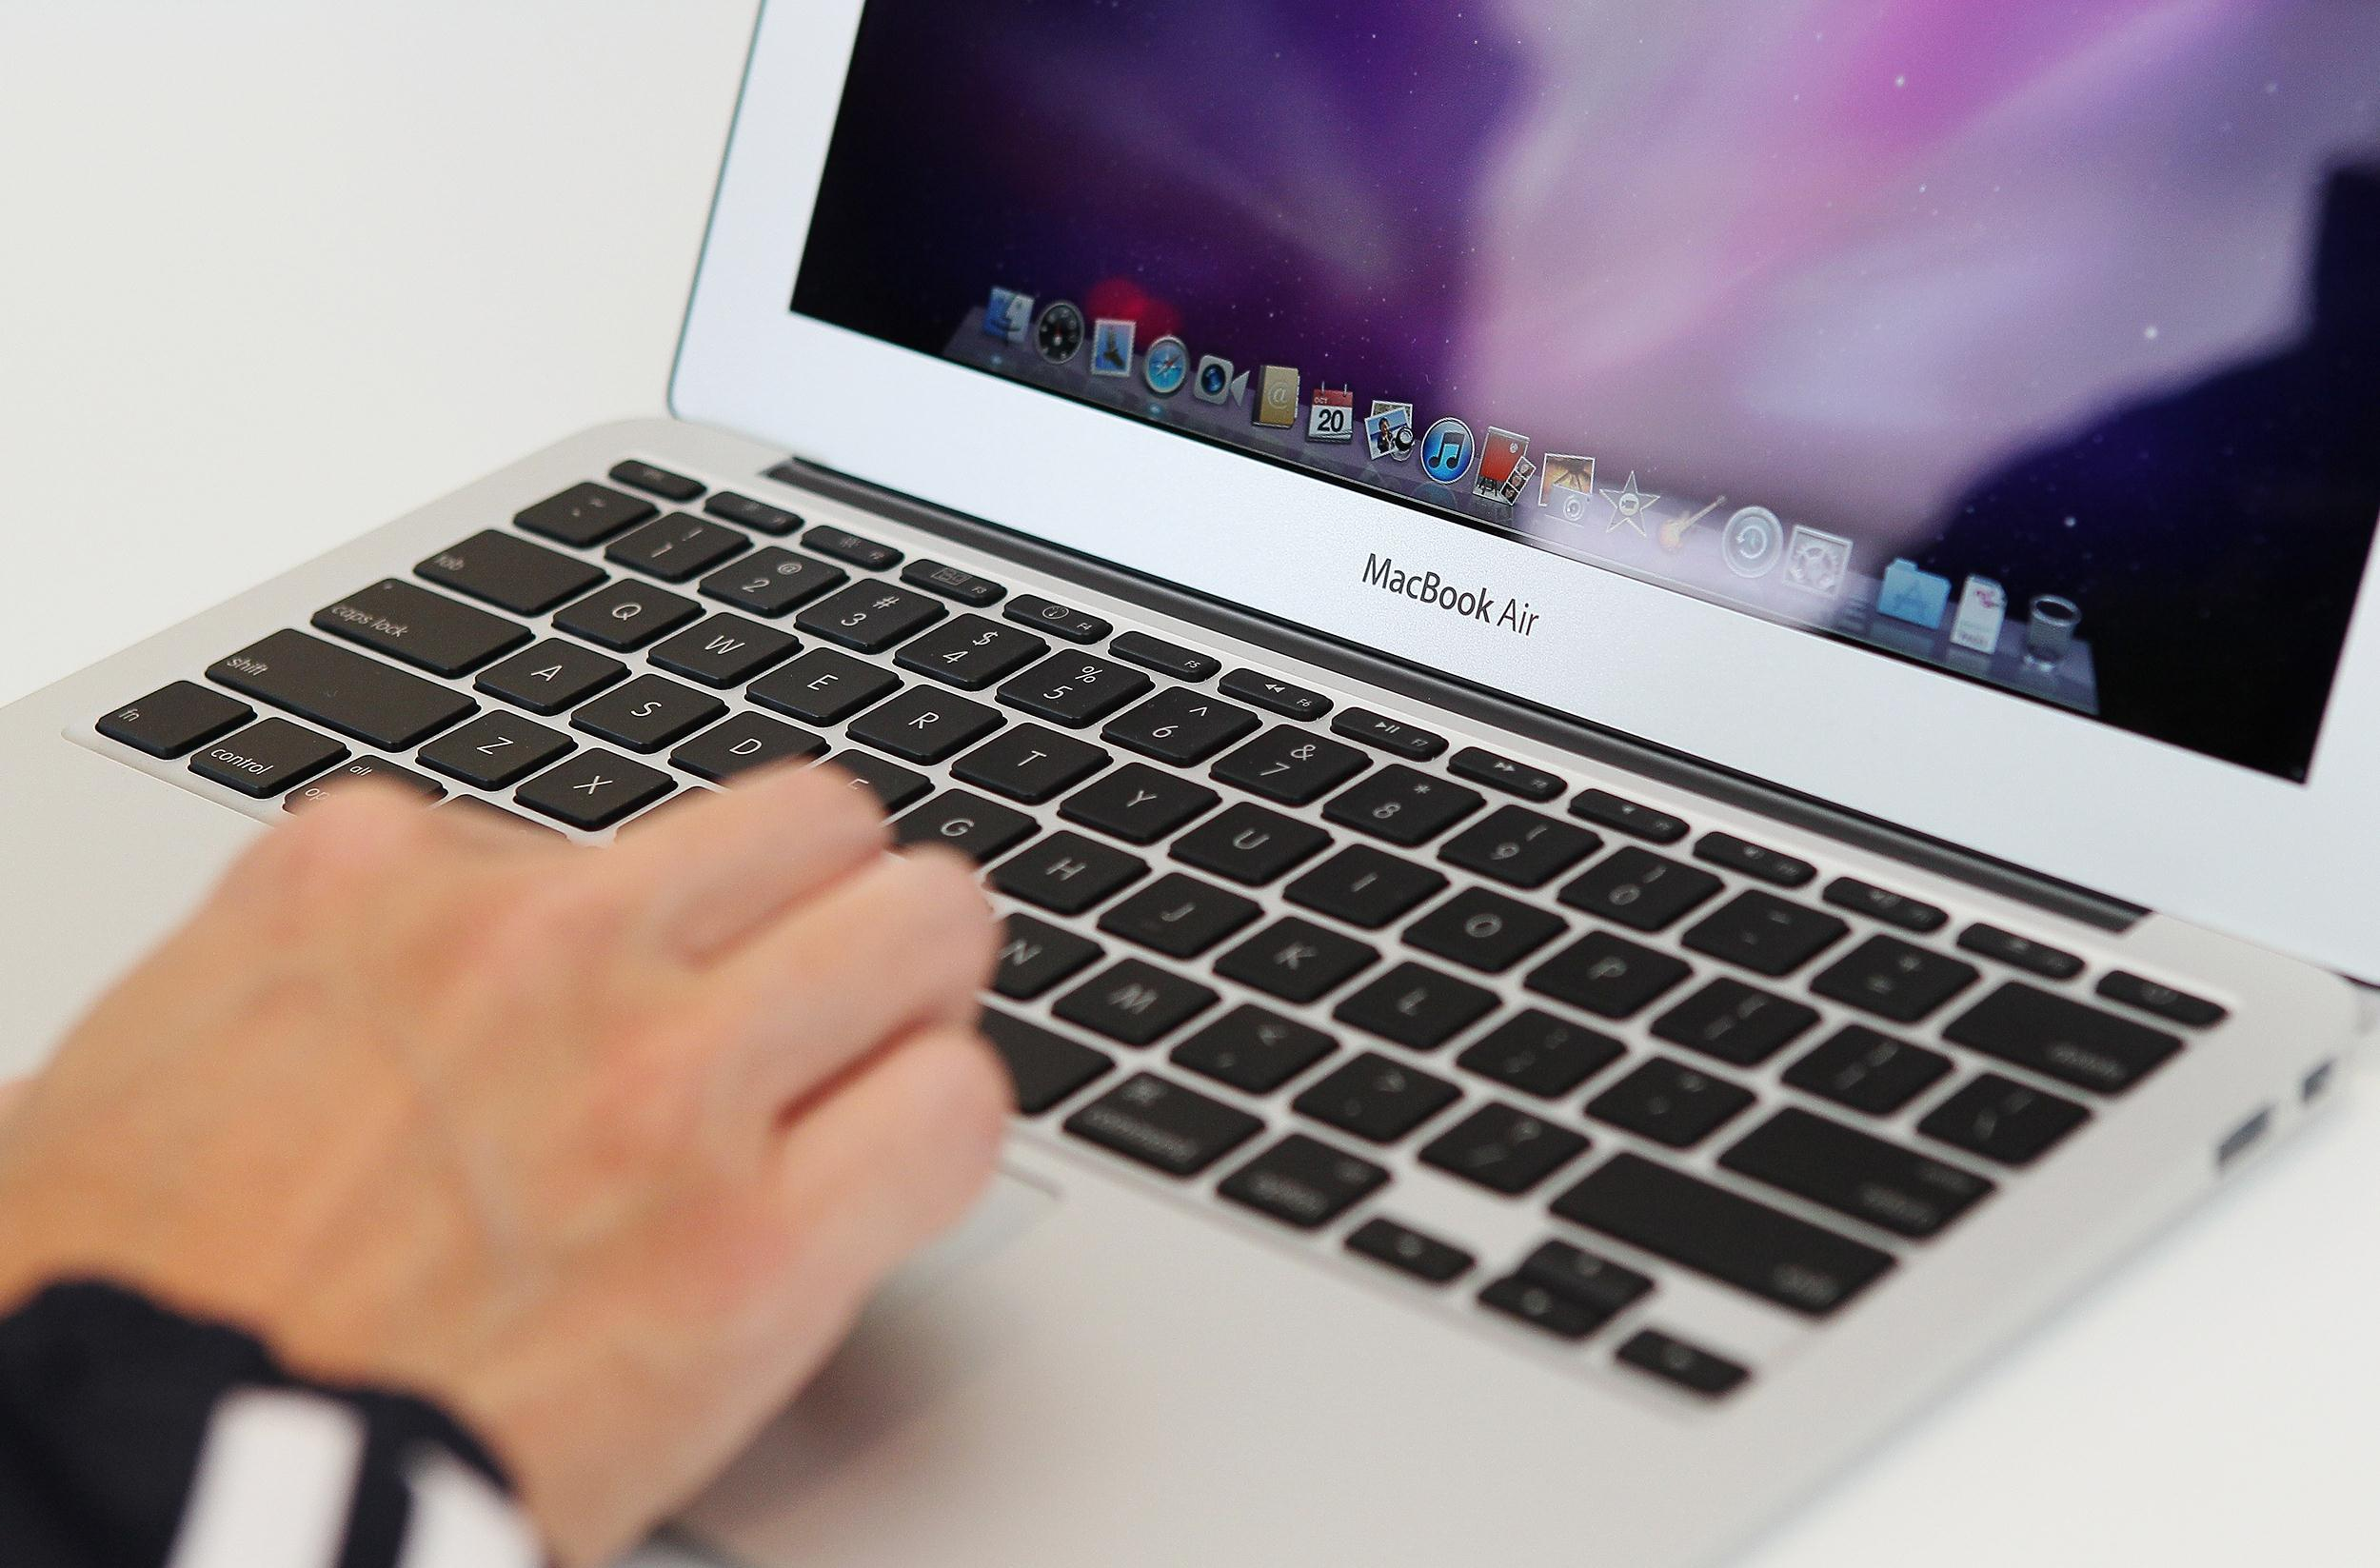 Where is the cheapest to buy a Mac: April 201532 comment